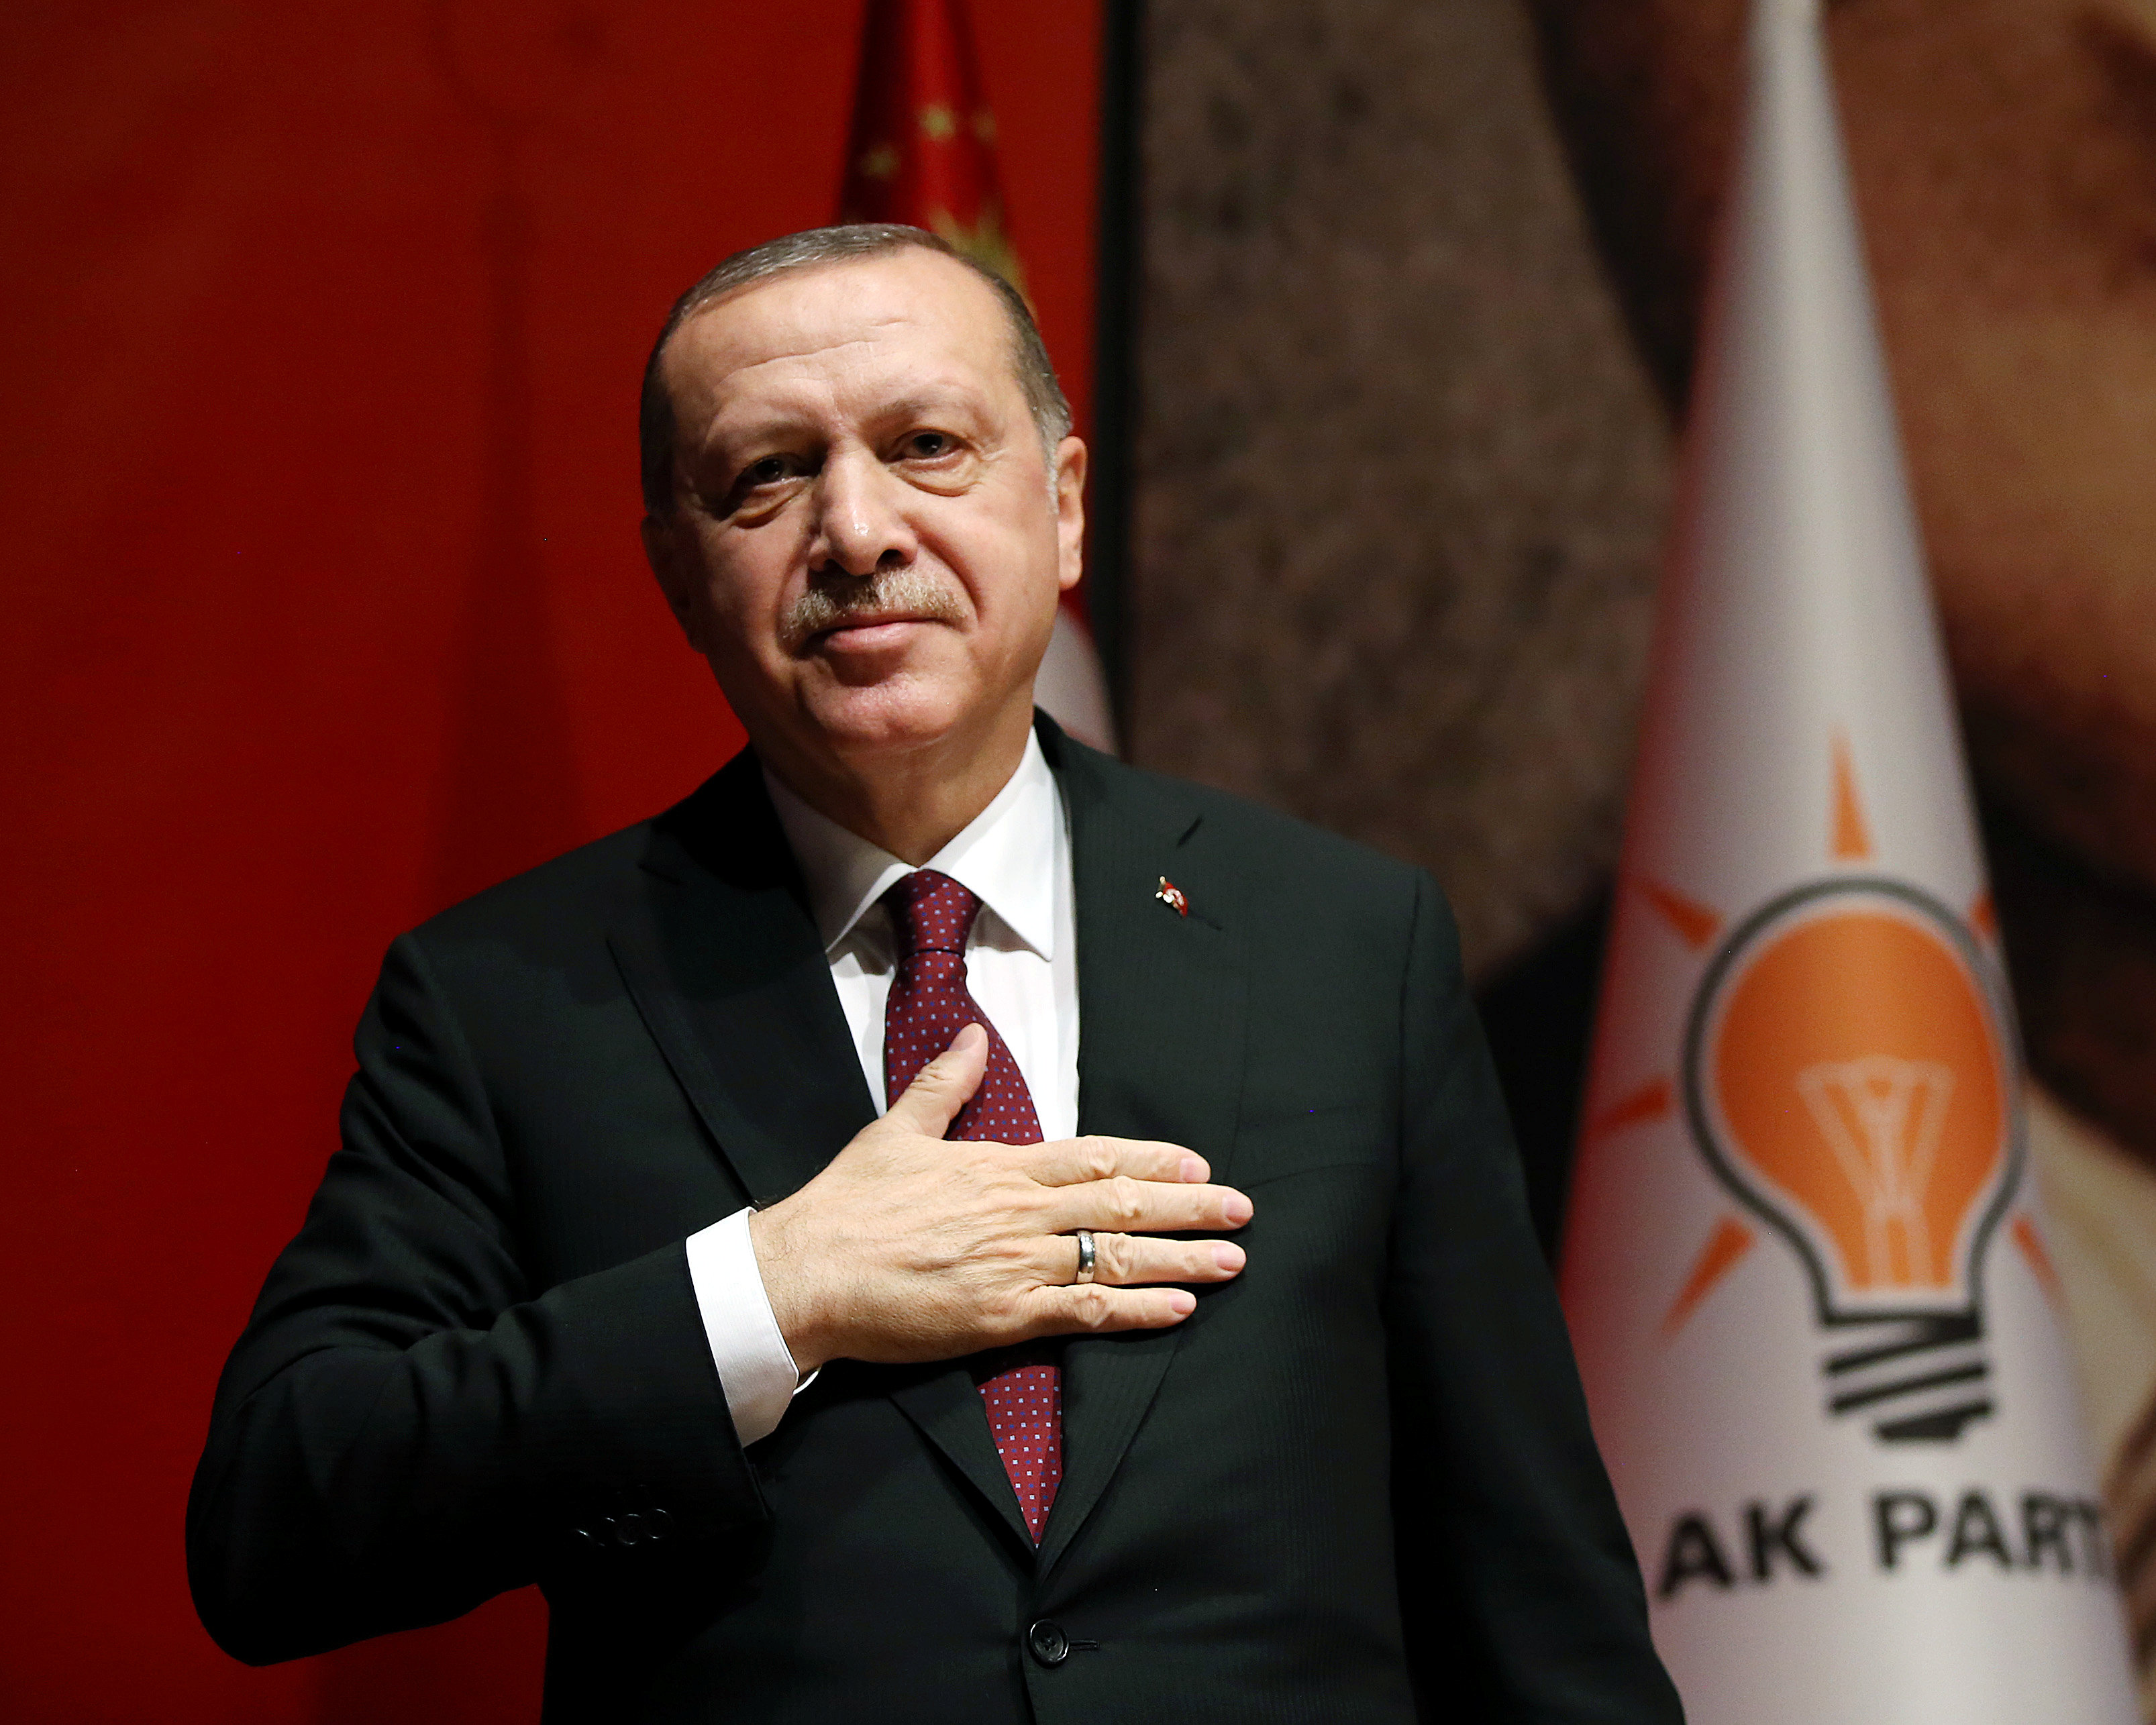 Turkish President Tayyip Erdogan attends a meeting of the ruling AK Party in Ankara, Turkey January 26, 2018. Yasin